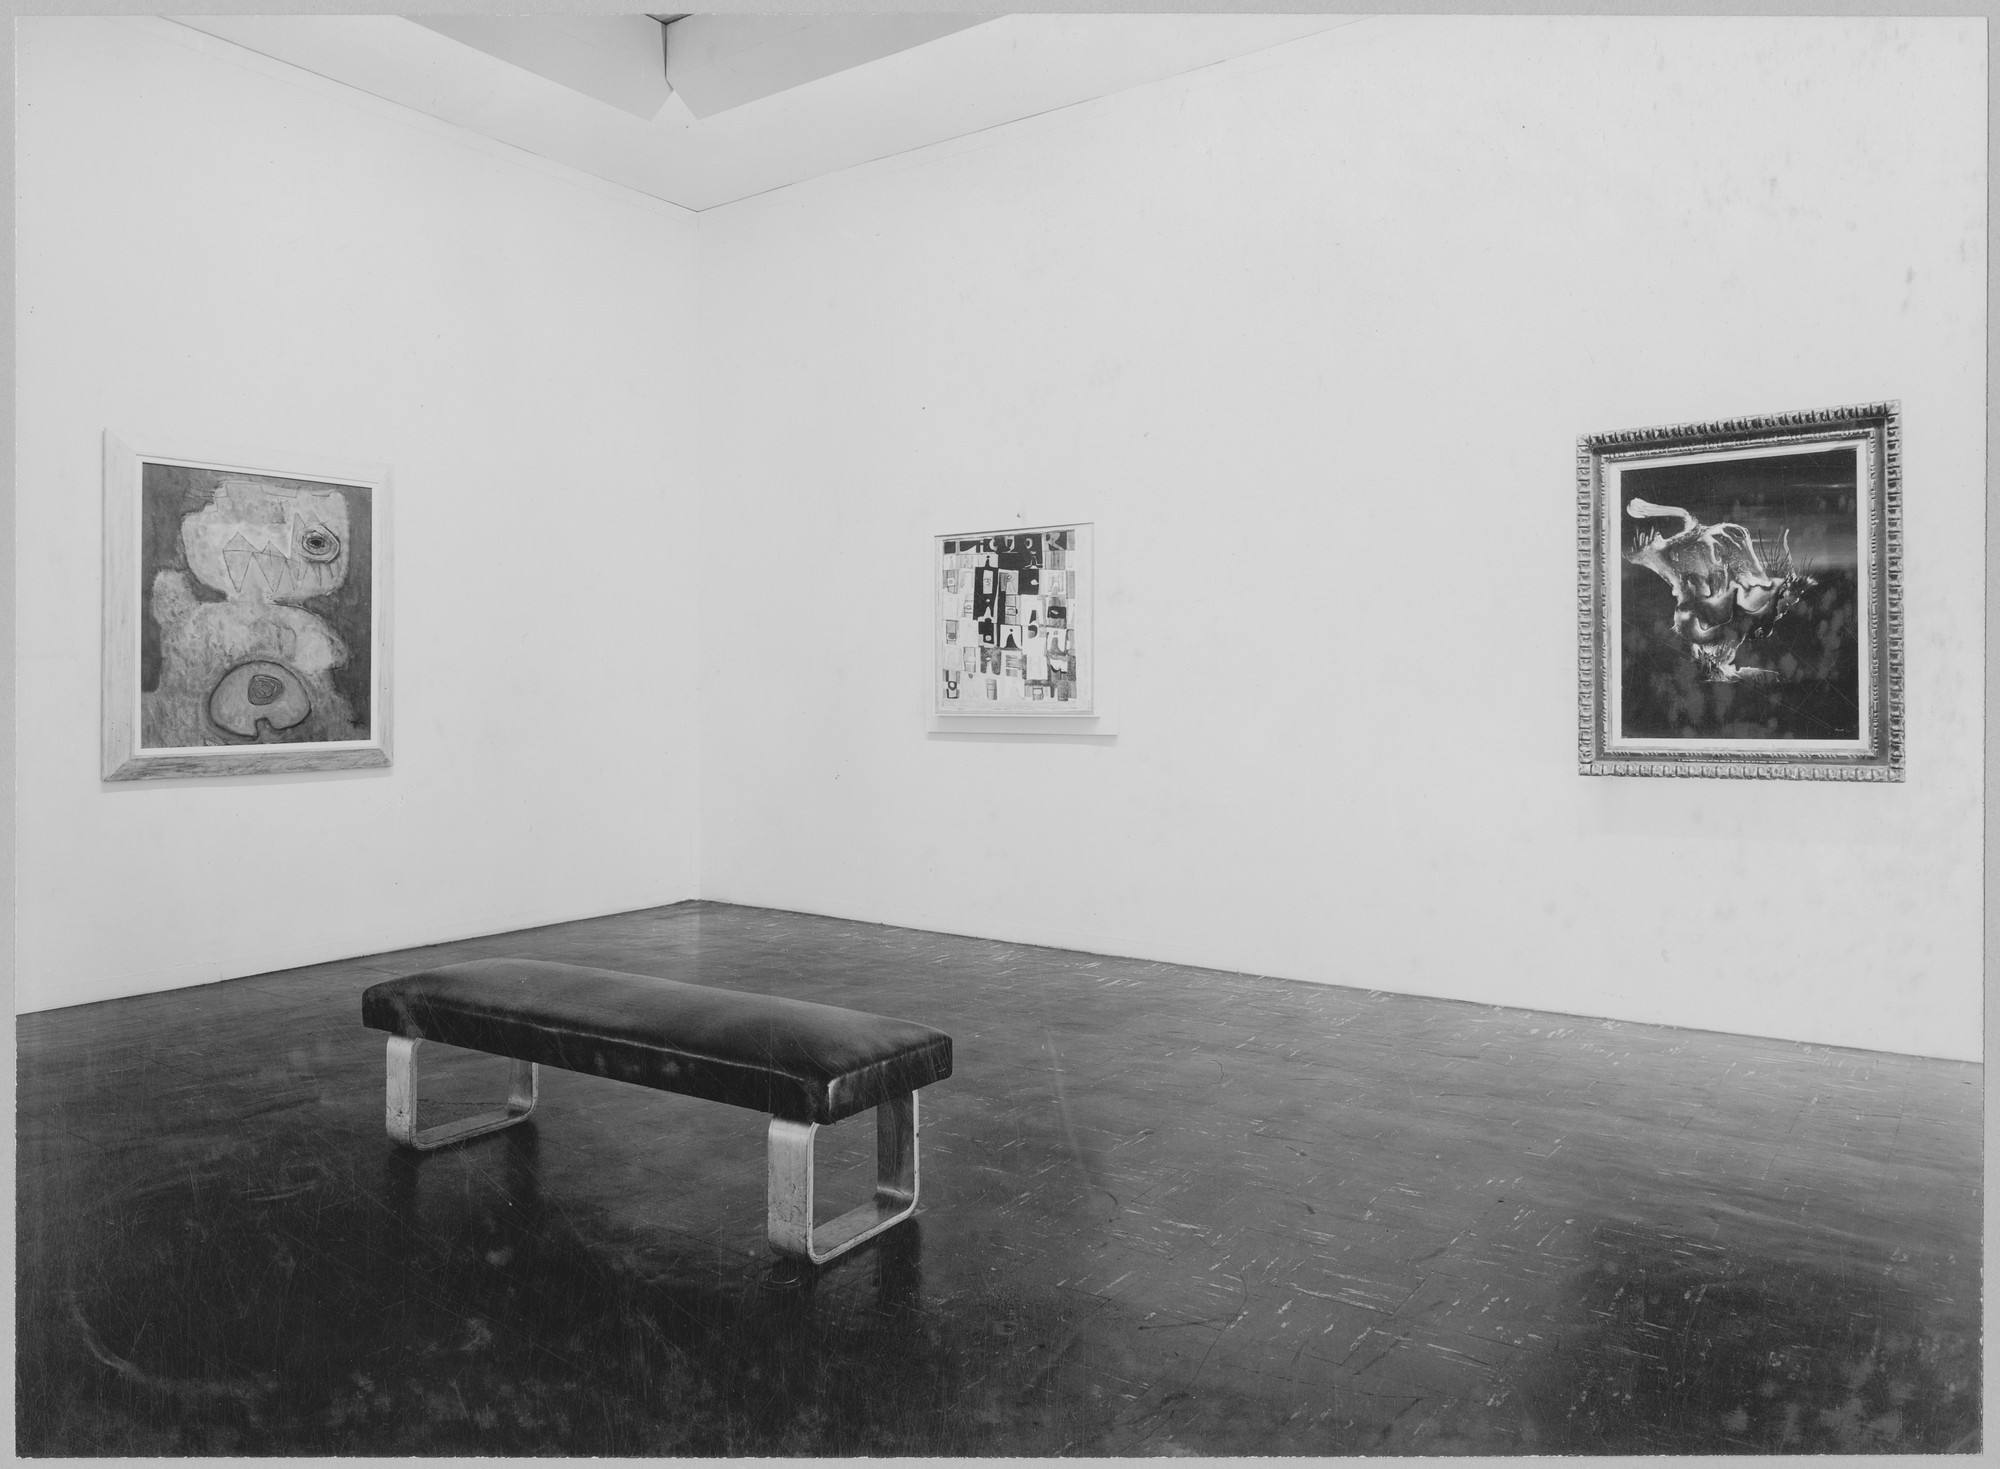 "Installation view of the exhibition, ""New Acquistions."" August 5, 1947–September 30, 1947. Photographic Archive. The Museum of Modern Art Archives, New York. IN355.1. Photograph by Soichi Sunami."